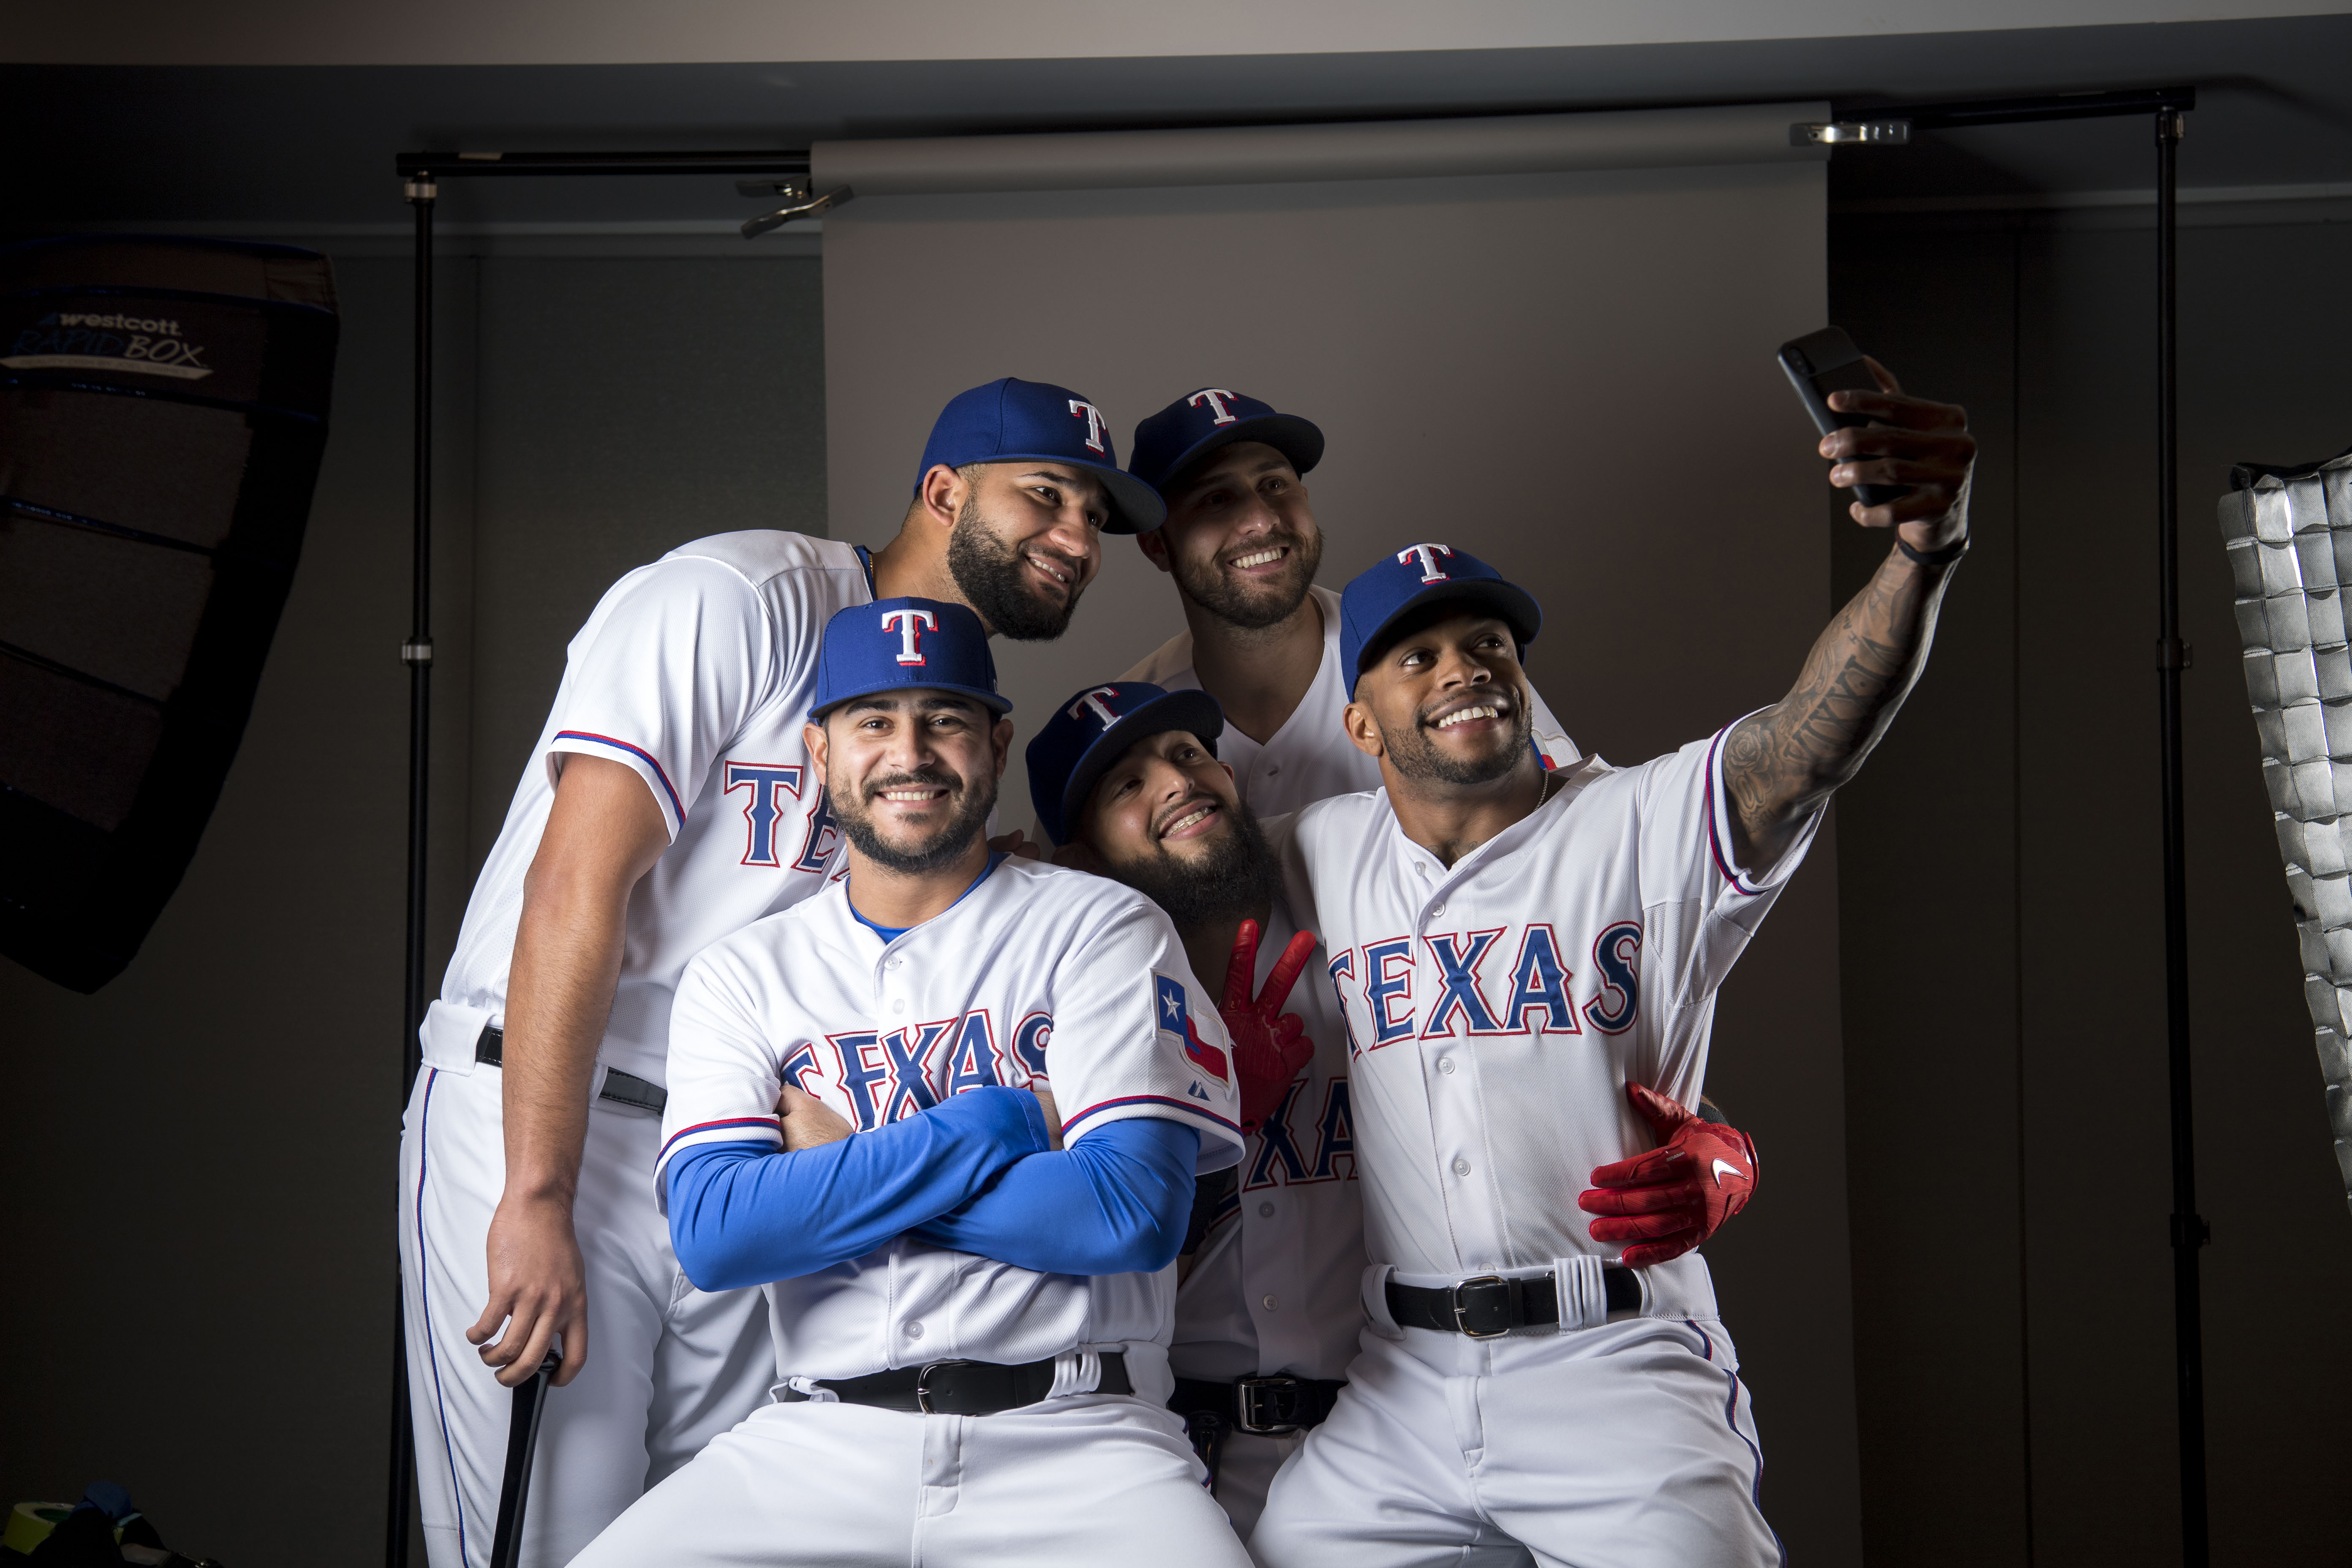 Feb 21, 2018; Surprise, AZ, USA; Texas Rangers starting pitcher Martin Perez (33) and right fielder Nomar Mazara (30) and second baseman Rougned Odor (12) and third baseman Joey Gallo (13) and left fielder Delino DeShields (3) pose together for a selfie photo during media day at Surprise Stadium. Mandatory Credit: Jerome Miron-USA TODAY Sports